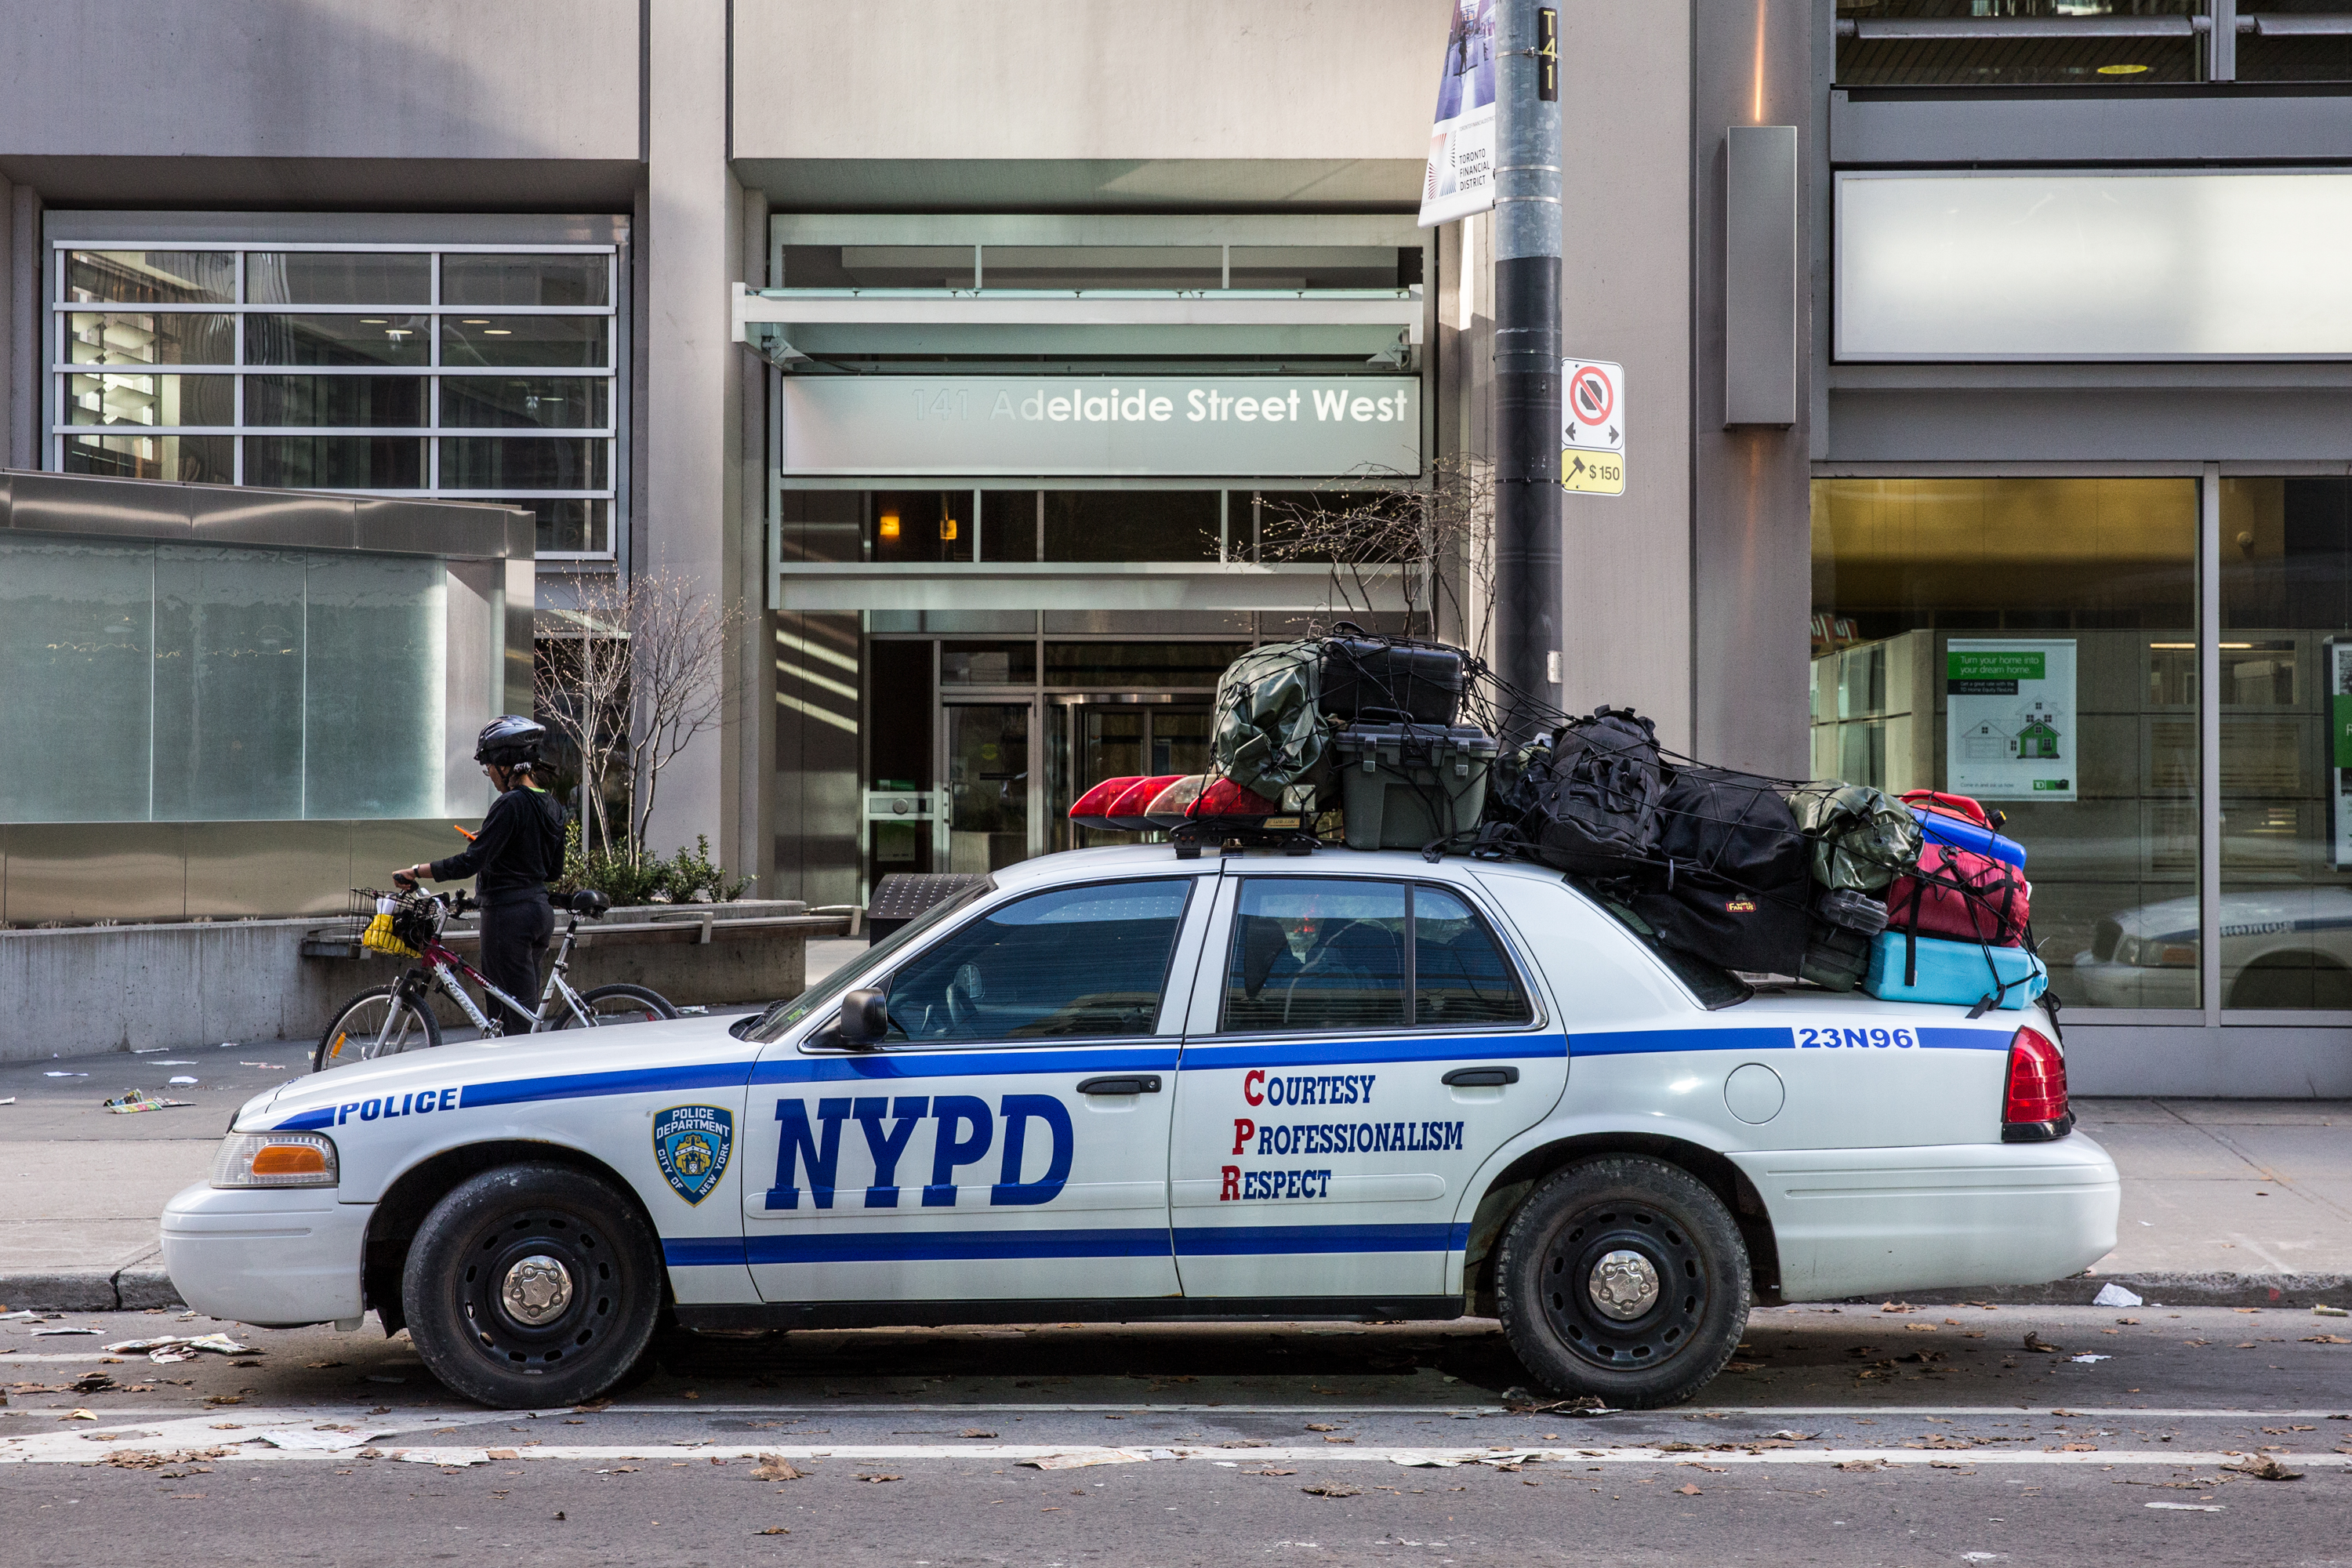 NYPD in Toronto?